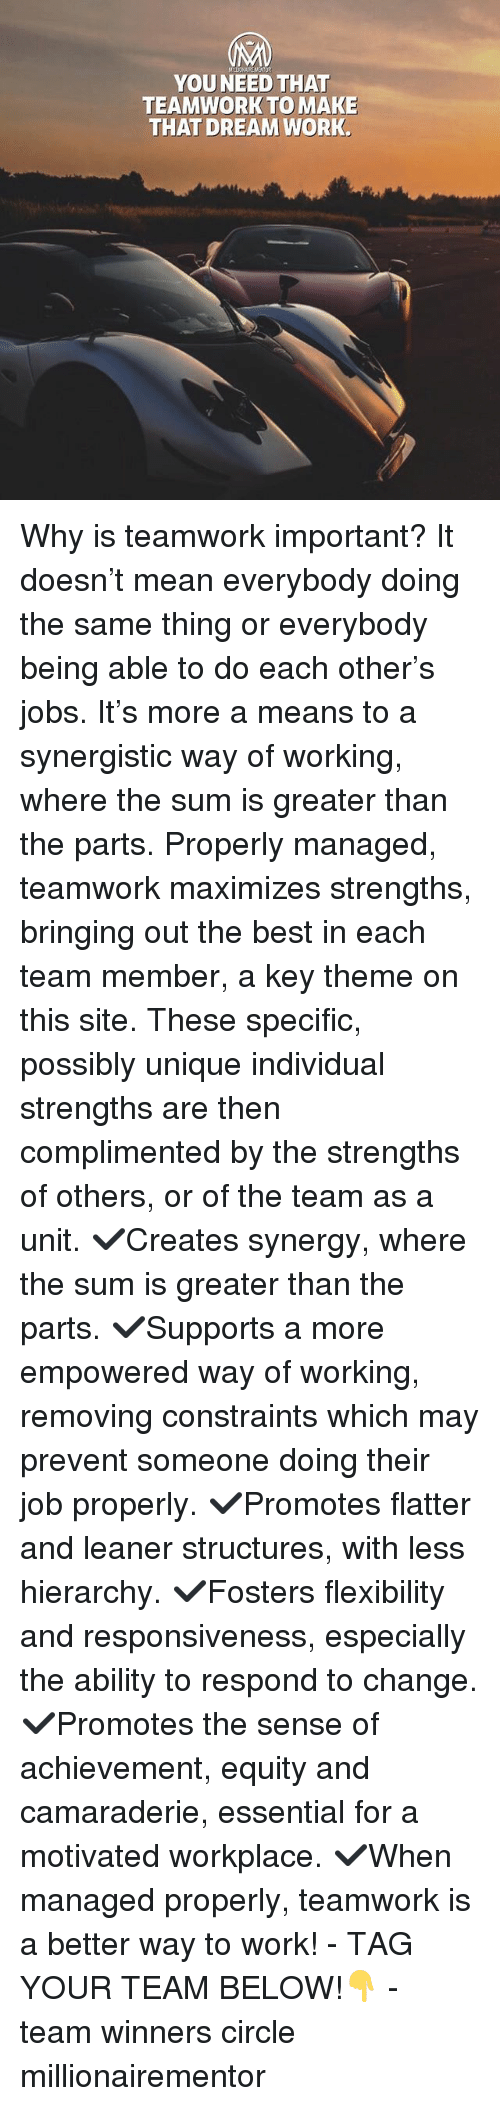 equity: YOU NEED THAT  TEAMWORK TO MAKE  THAT DREAM WORK Why is teamwork important? It doesn't mean everybody doing the same thing or everybody being able to do each other's jobs. It's more a means to a synergistic way of working, where the sum is greater than the parts. Properly managed, teamwork maximizes strengths, bringing out the best in each team member, a key theme on this site. These specific, possibly unique individual strengths are then complimented by the strengths of others, or of the team as a unit. ✔️Creates synergy, where the sum is greater than the parts. ✔️Supports a more empowered way of working, removing constraints which may prevent someone doing their job properly. ✔️Promotes flatter and leaner structures, with less hierarchy. ✔️Fosters flexibility and responsiveness, especially the ability to respond to change. ✔️Promotes the sense of achievement, equity and camaraderie, essential for a motivated workplace. ✔️When managed properly, teamwork is a better way to work! - TAG YOUR TEAM BELOW!👇 - team winners circle millionairementor